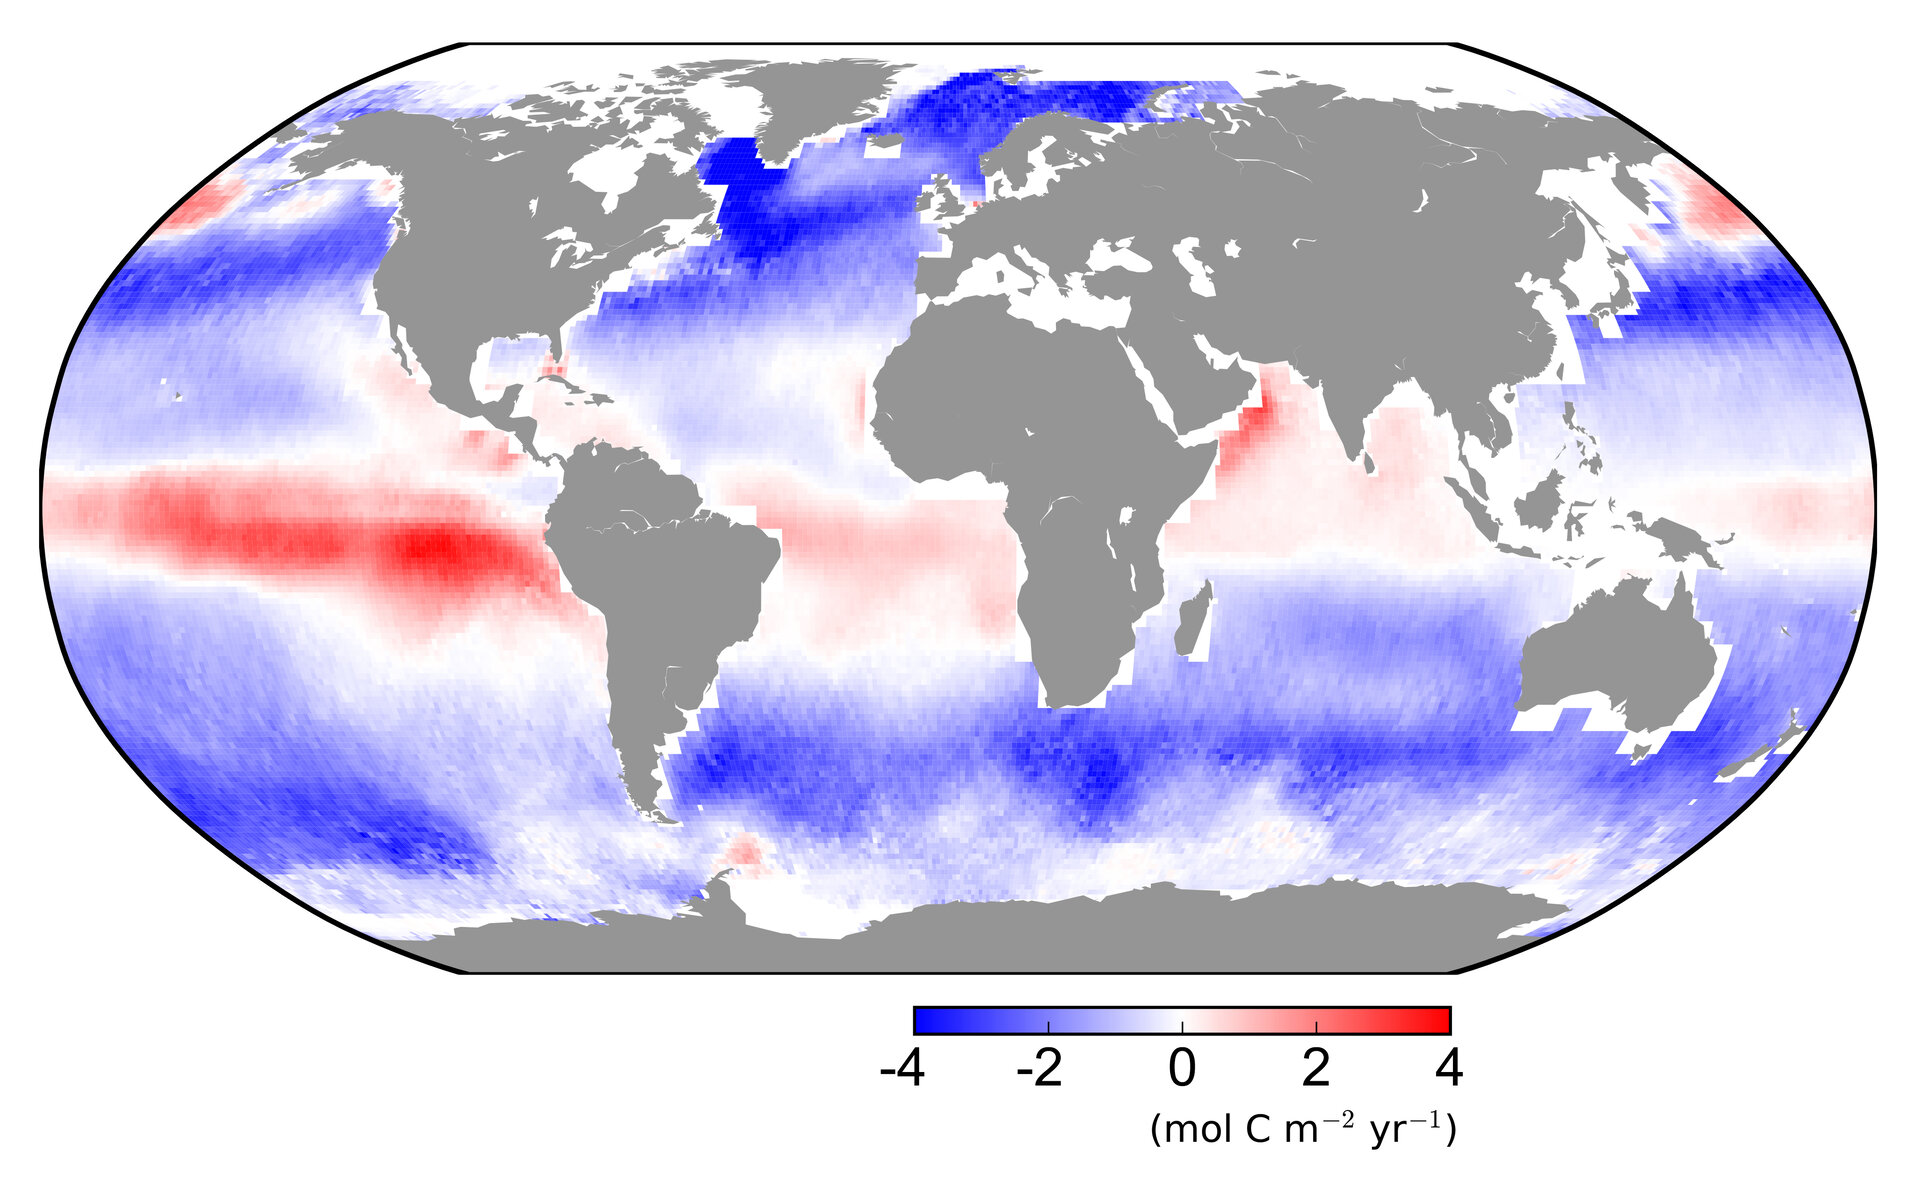 Carbon dioxide flow between atmosphere and ocean